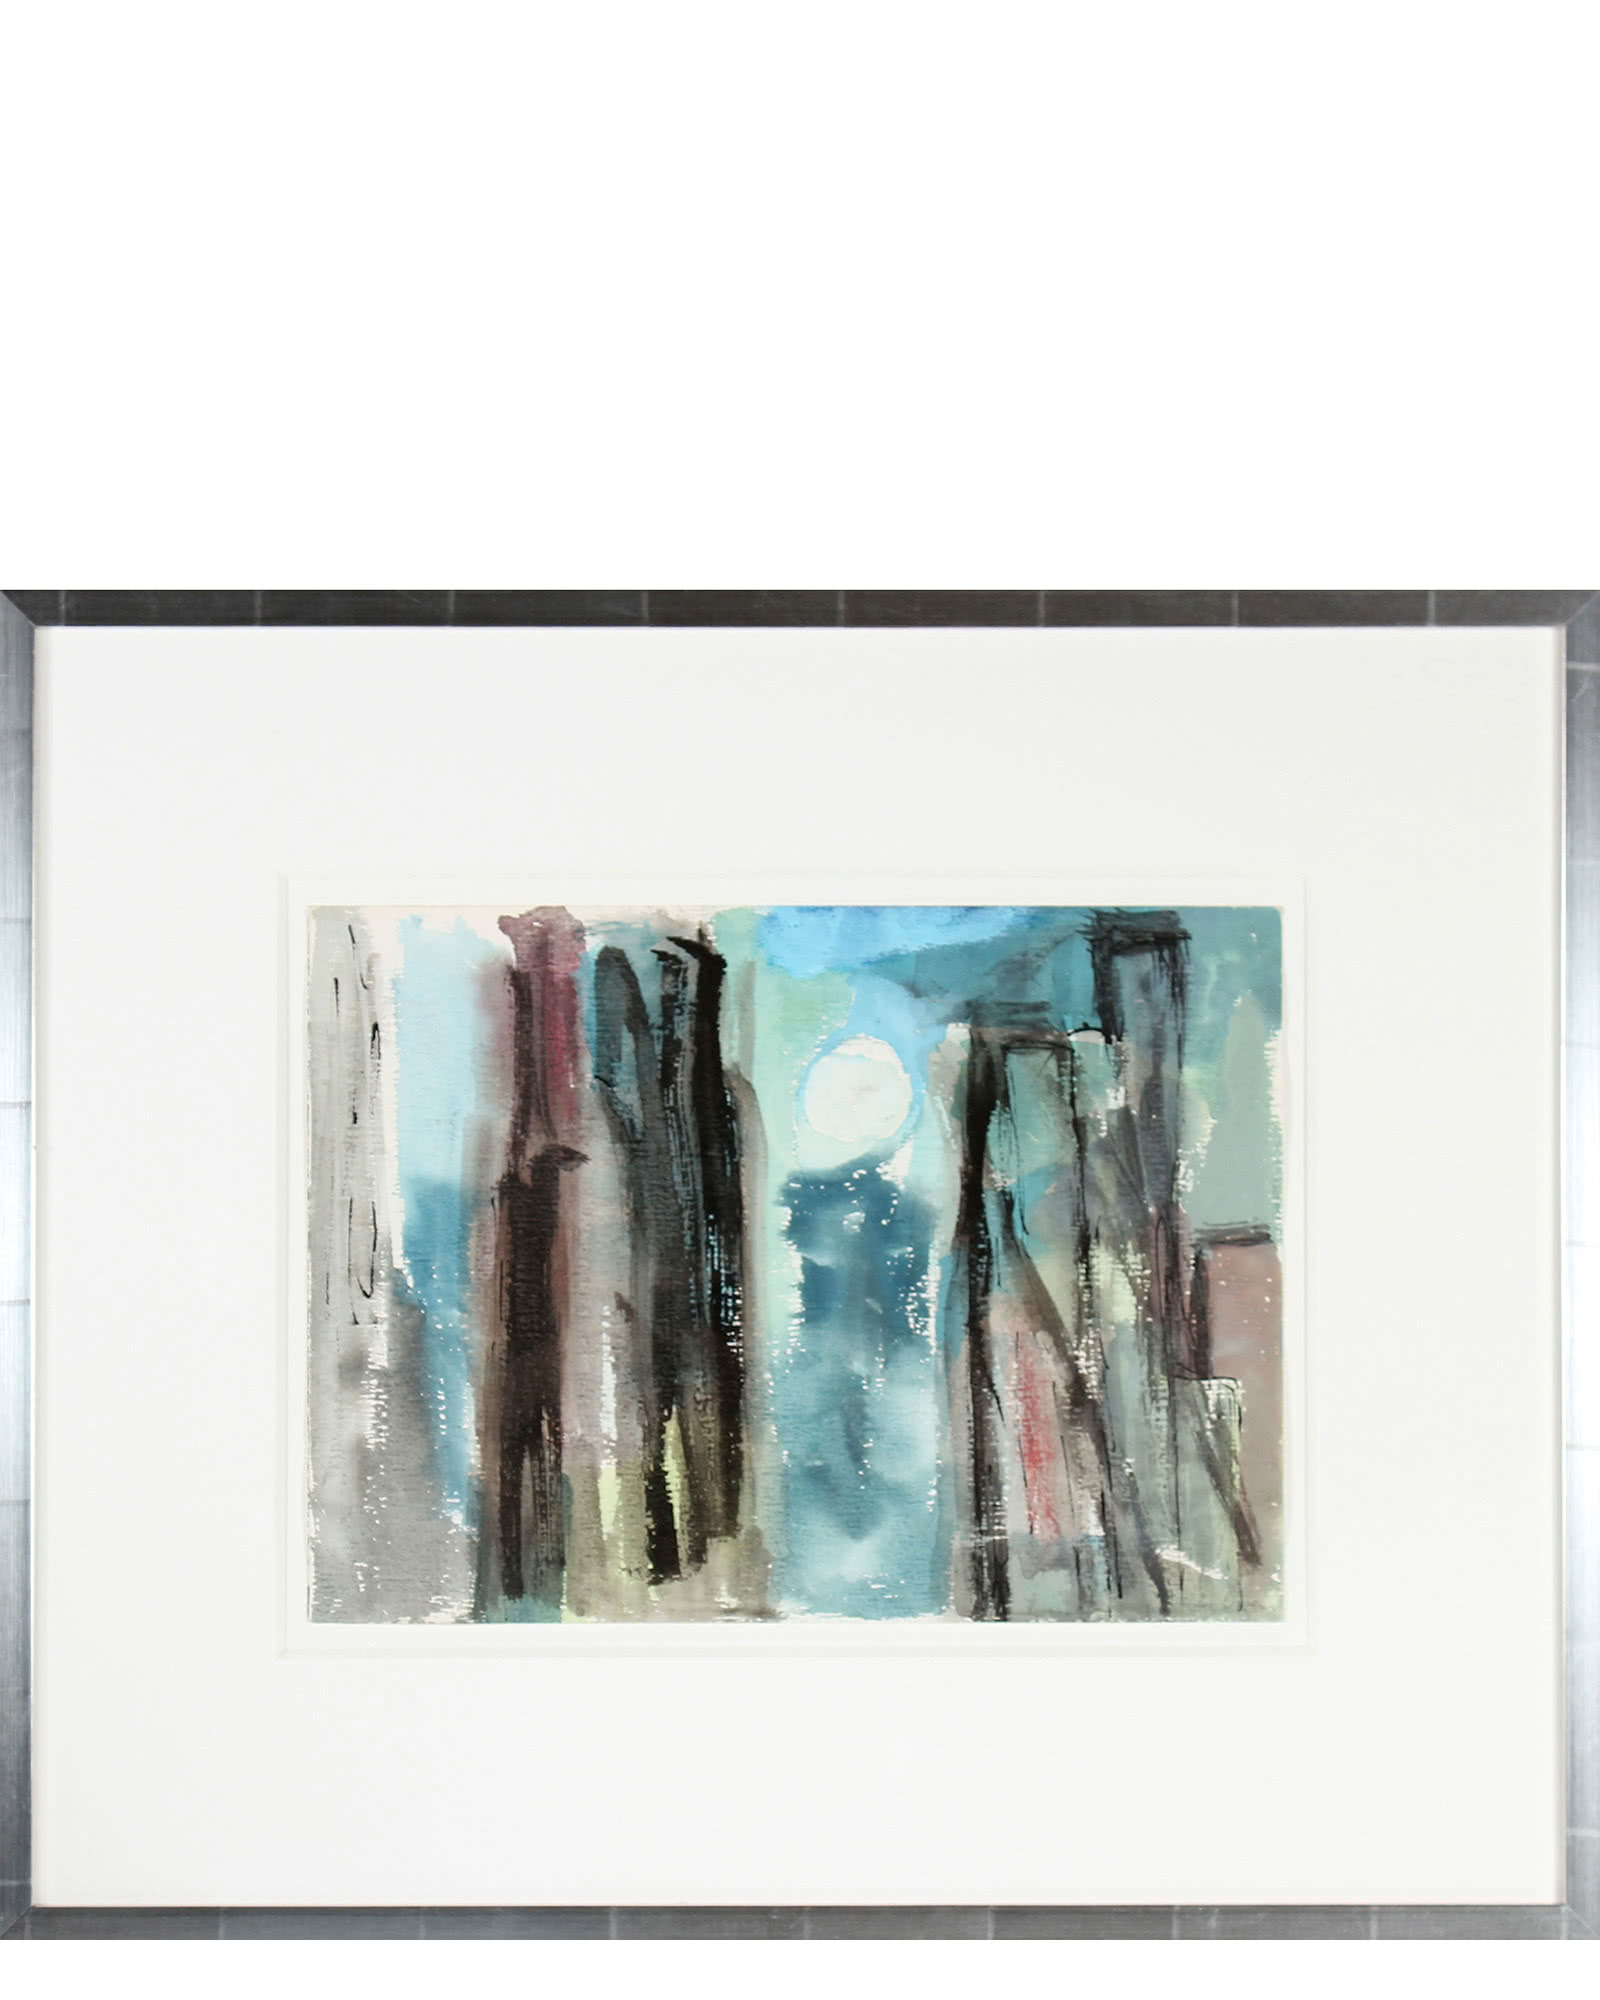 New York in Abstraction by Georgette Owens